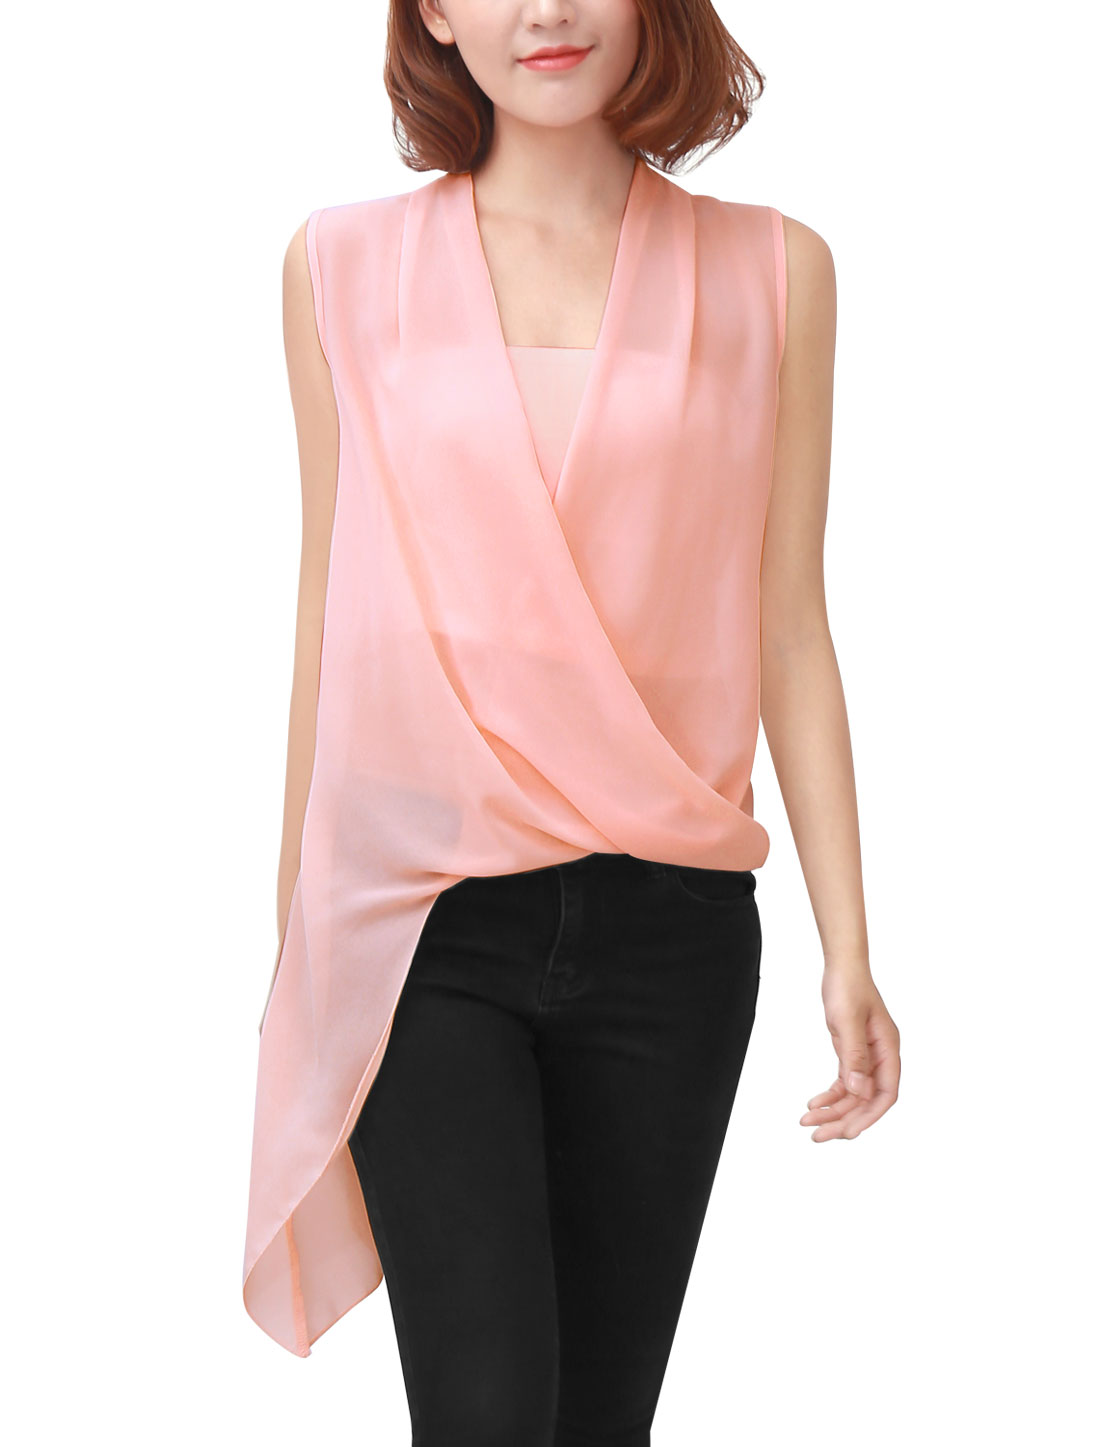 Women Semi-sheer Chiffon Blouse w Stretchy Tube Top Nude Pink M